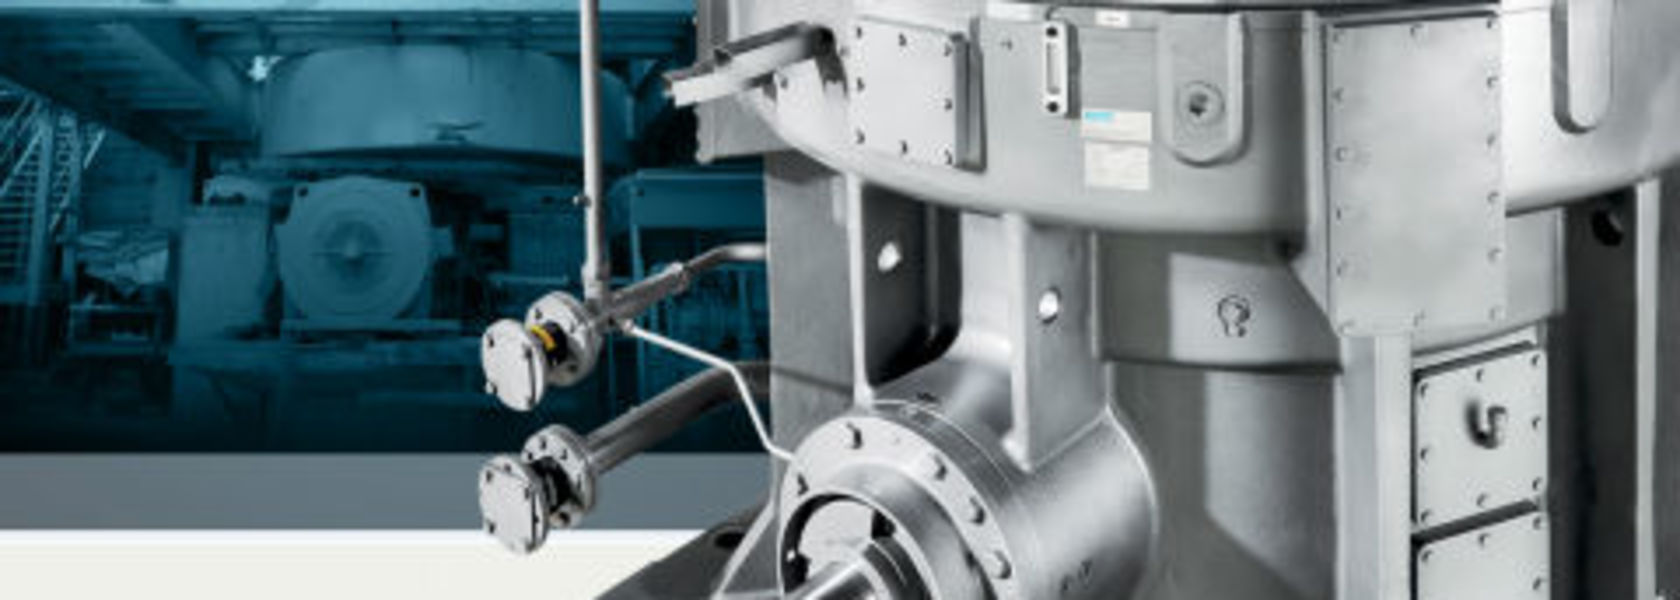 Siemens supplies mill components to BHEL